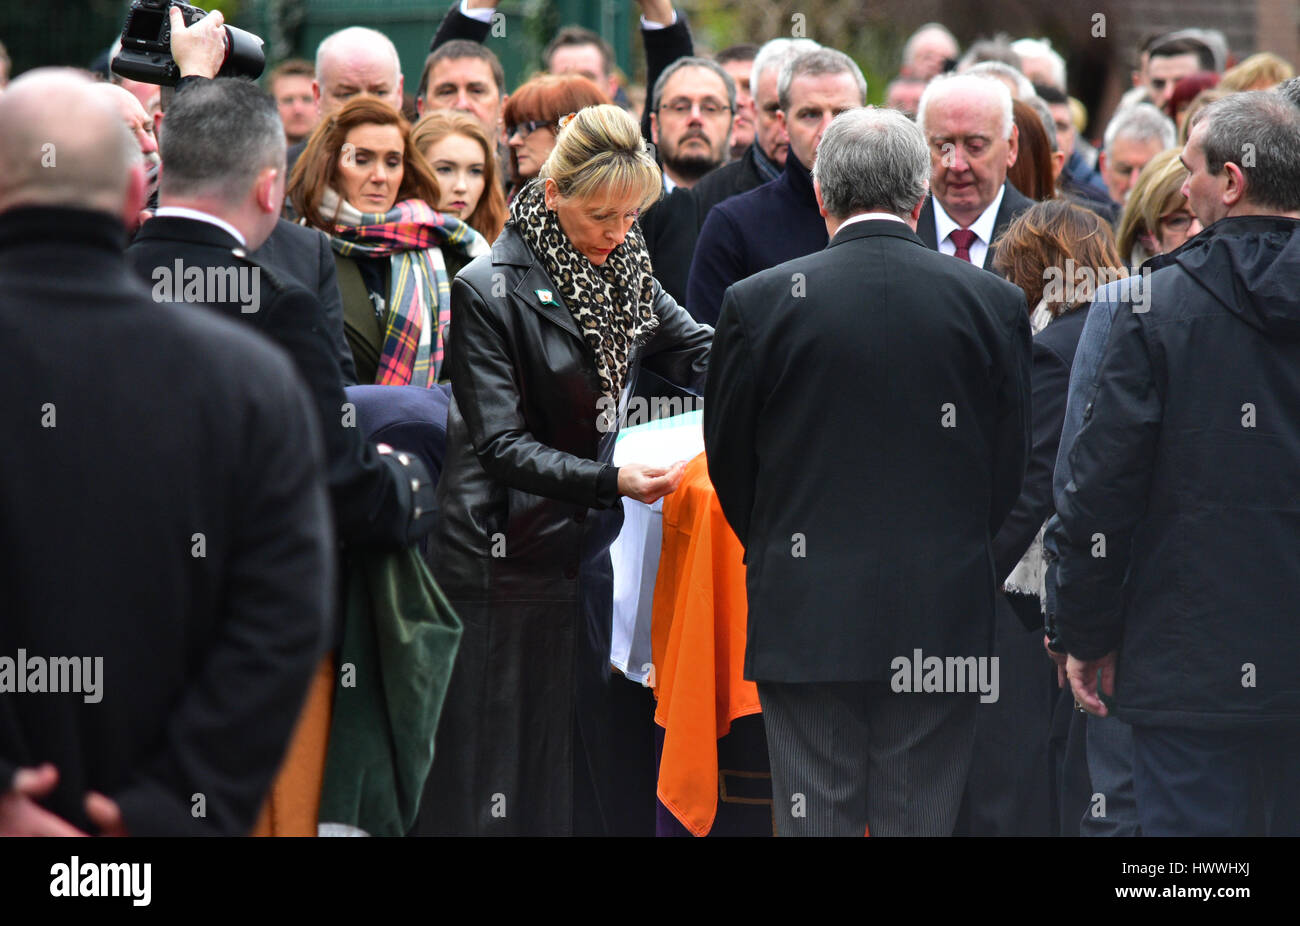 Derry, Northern Ireland. 23rd March, 2017. MEP Martina Anderson fixes an Irish flag to the coffin of Sinn Féins - Stock Image